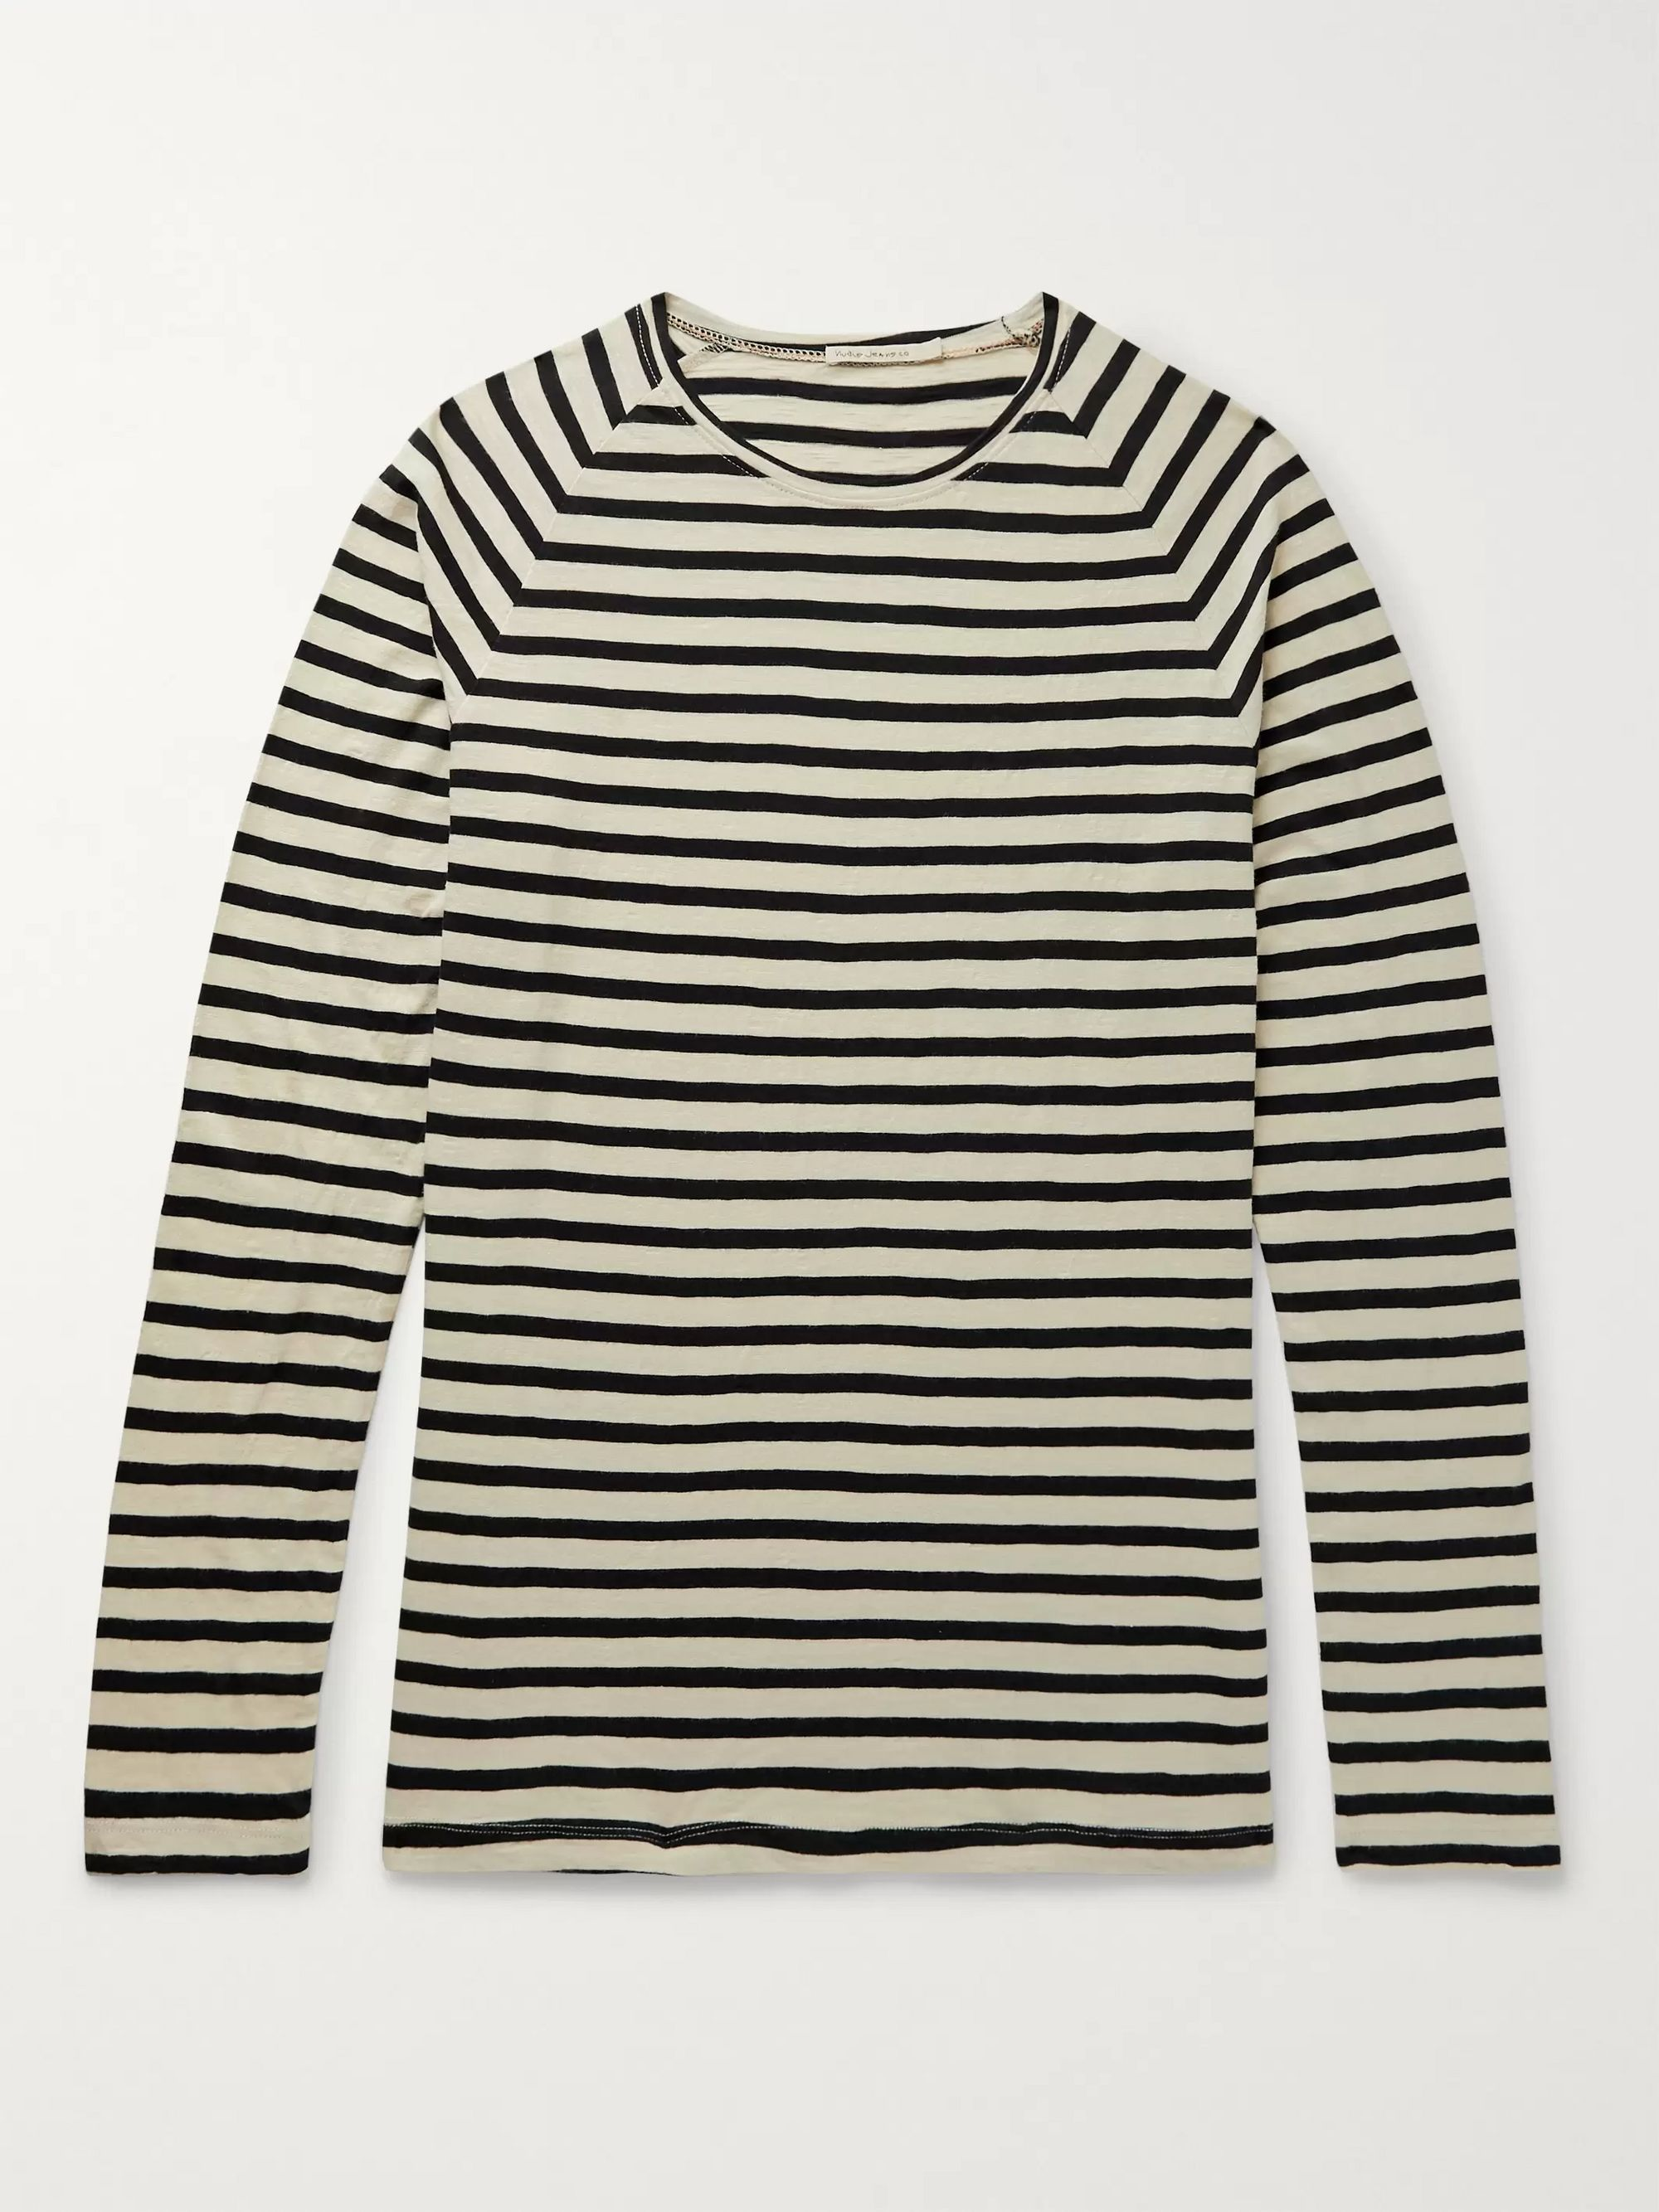 Nudie Jeans Otto Striped Organic Cotton-Jersey T-Shirt